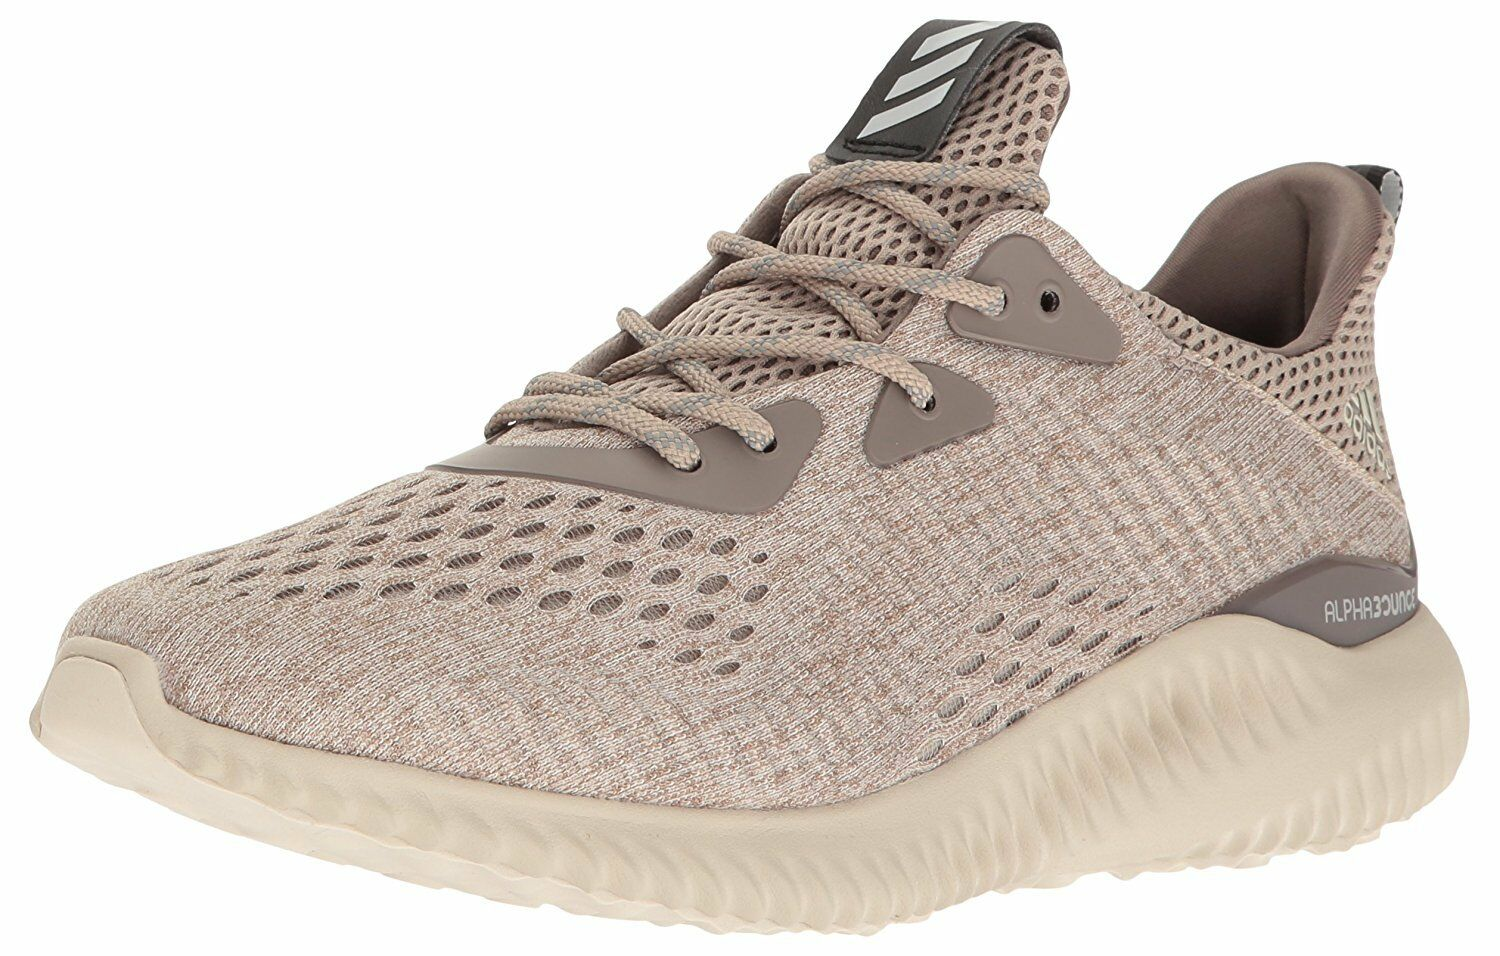 adidas Performance Femme Alphabounce EM W Running Chaussures- Pick SZ/Color.